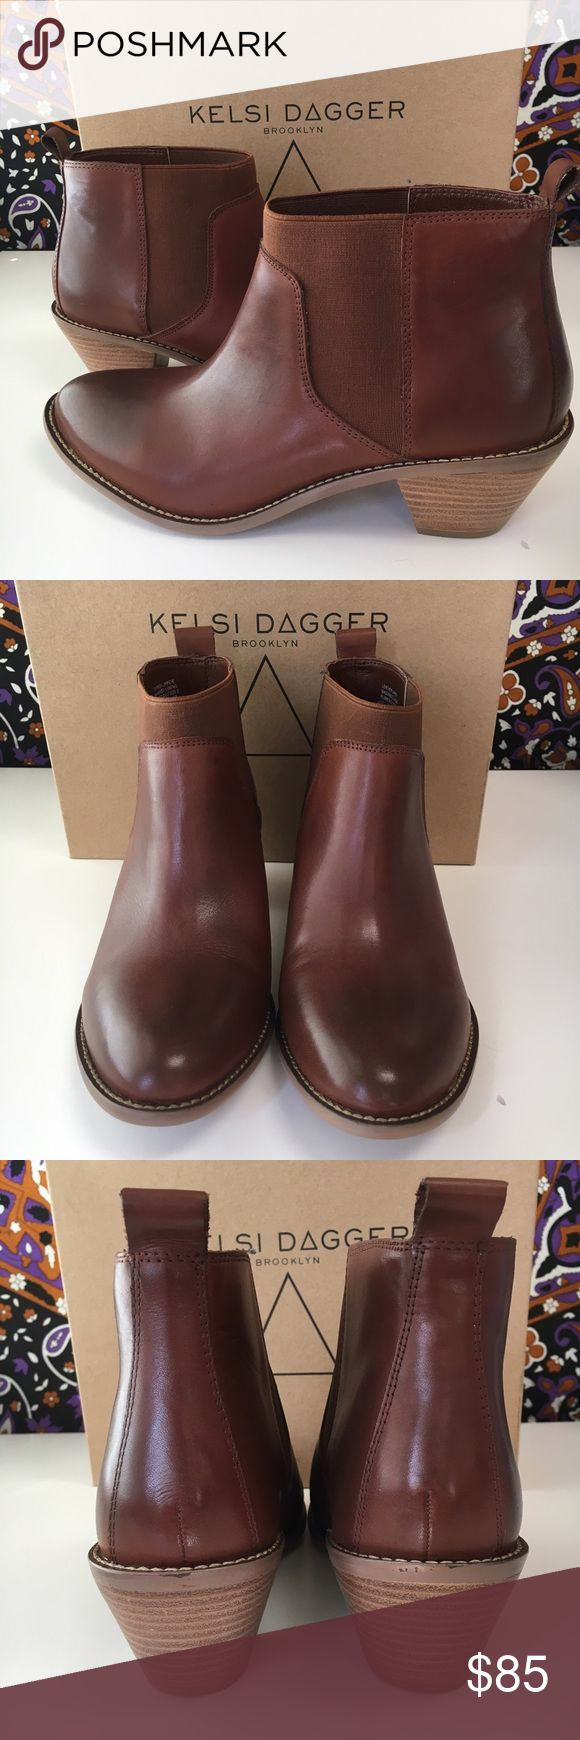 "Kelsi Dagger Brooklyn Kadi Ankle Boot Kelsi Dagger Brooklyn Kadi Ankle Boot. Nubuck leather upper in beautiful toffee color. Slip-on, lightly padded footbed with 2"" heel. Runs slightly small and will best fit a size 8.5-9. Brand new and never worn! Kelsi Dagger Shoes Ankle Boots & Booties"